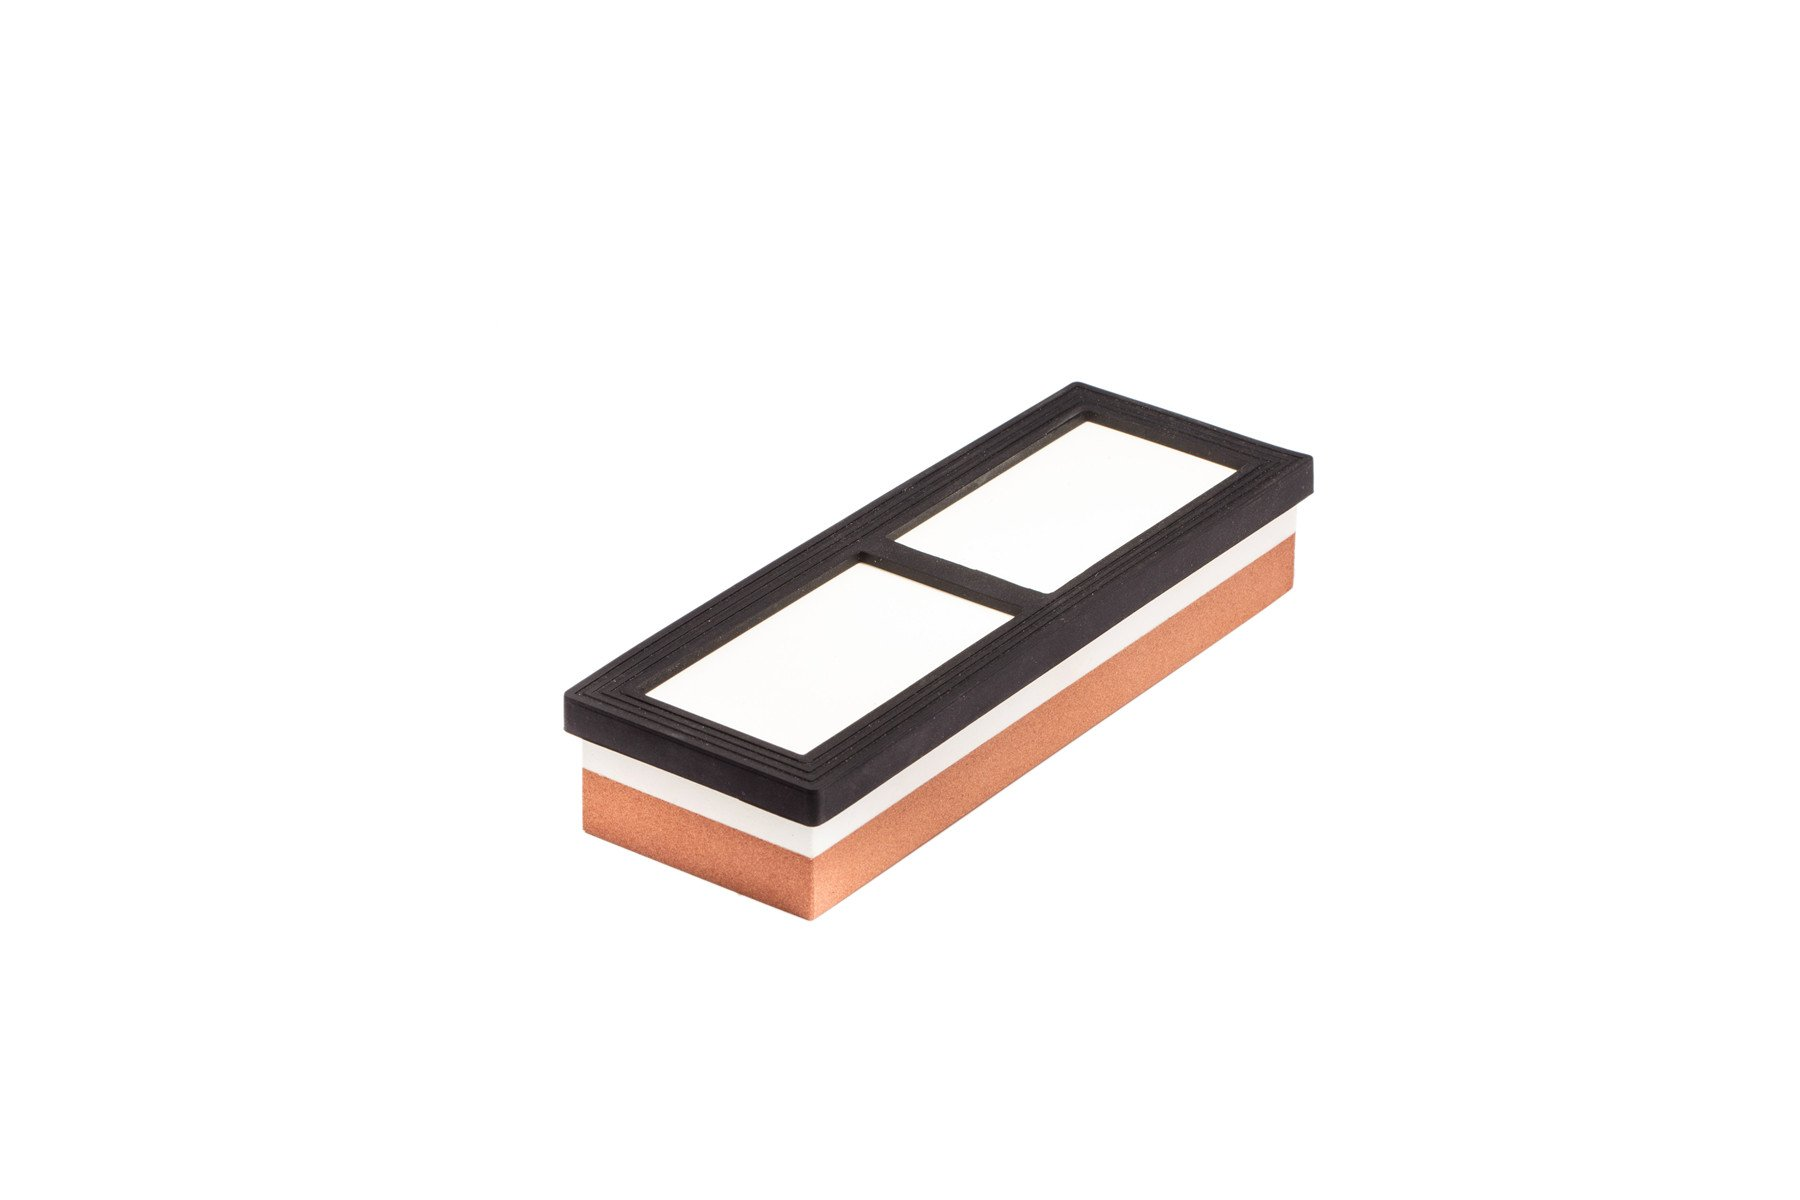 Whetstone — Lupan Double-Sided Knife Sharpening Stone Grit with sturdy non-slip rubber Base (3000/8000) by Lupan (Image #4)